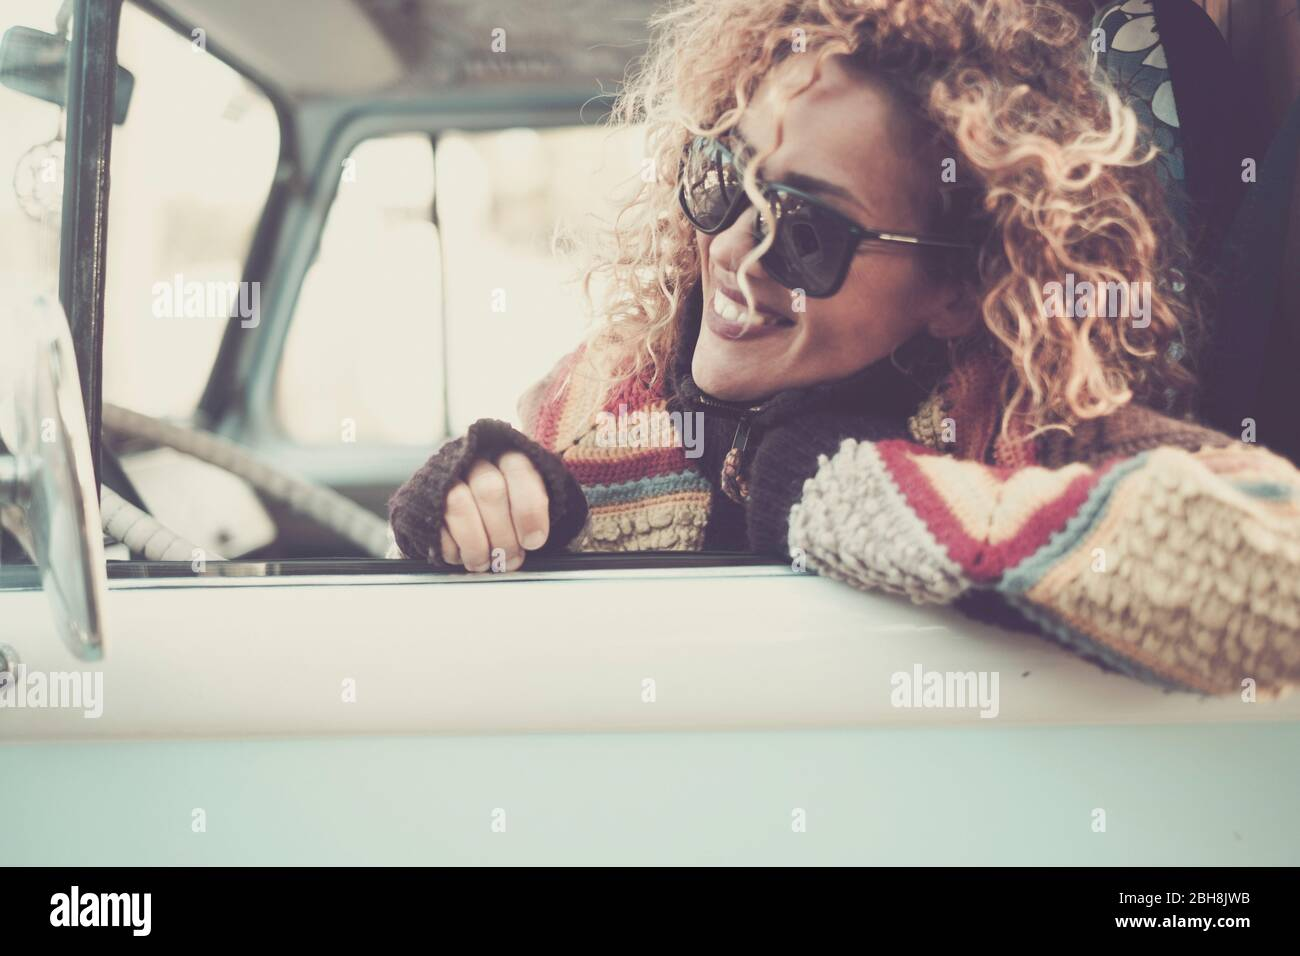 Cheerful happy beautiful caucasian young woman looking and smiling out of the window from old vintage van bus with sunglasses - travel driving concept for cute attractive girl with curly hair Stock Photo